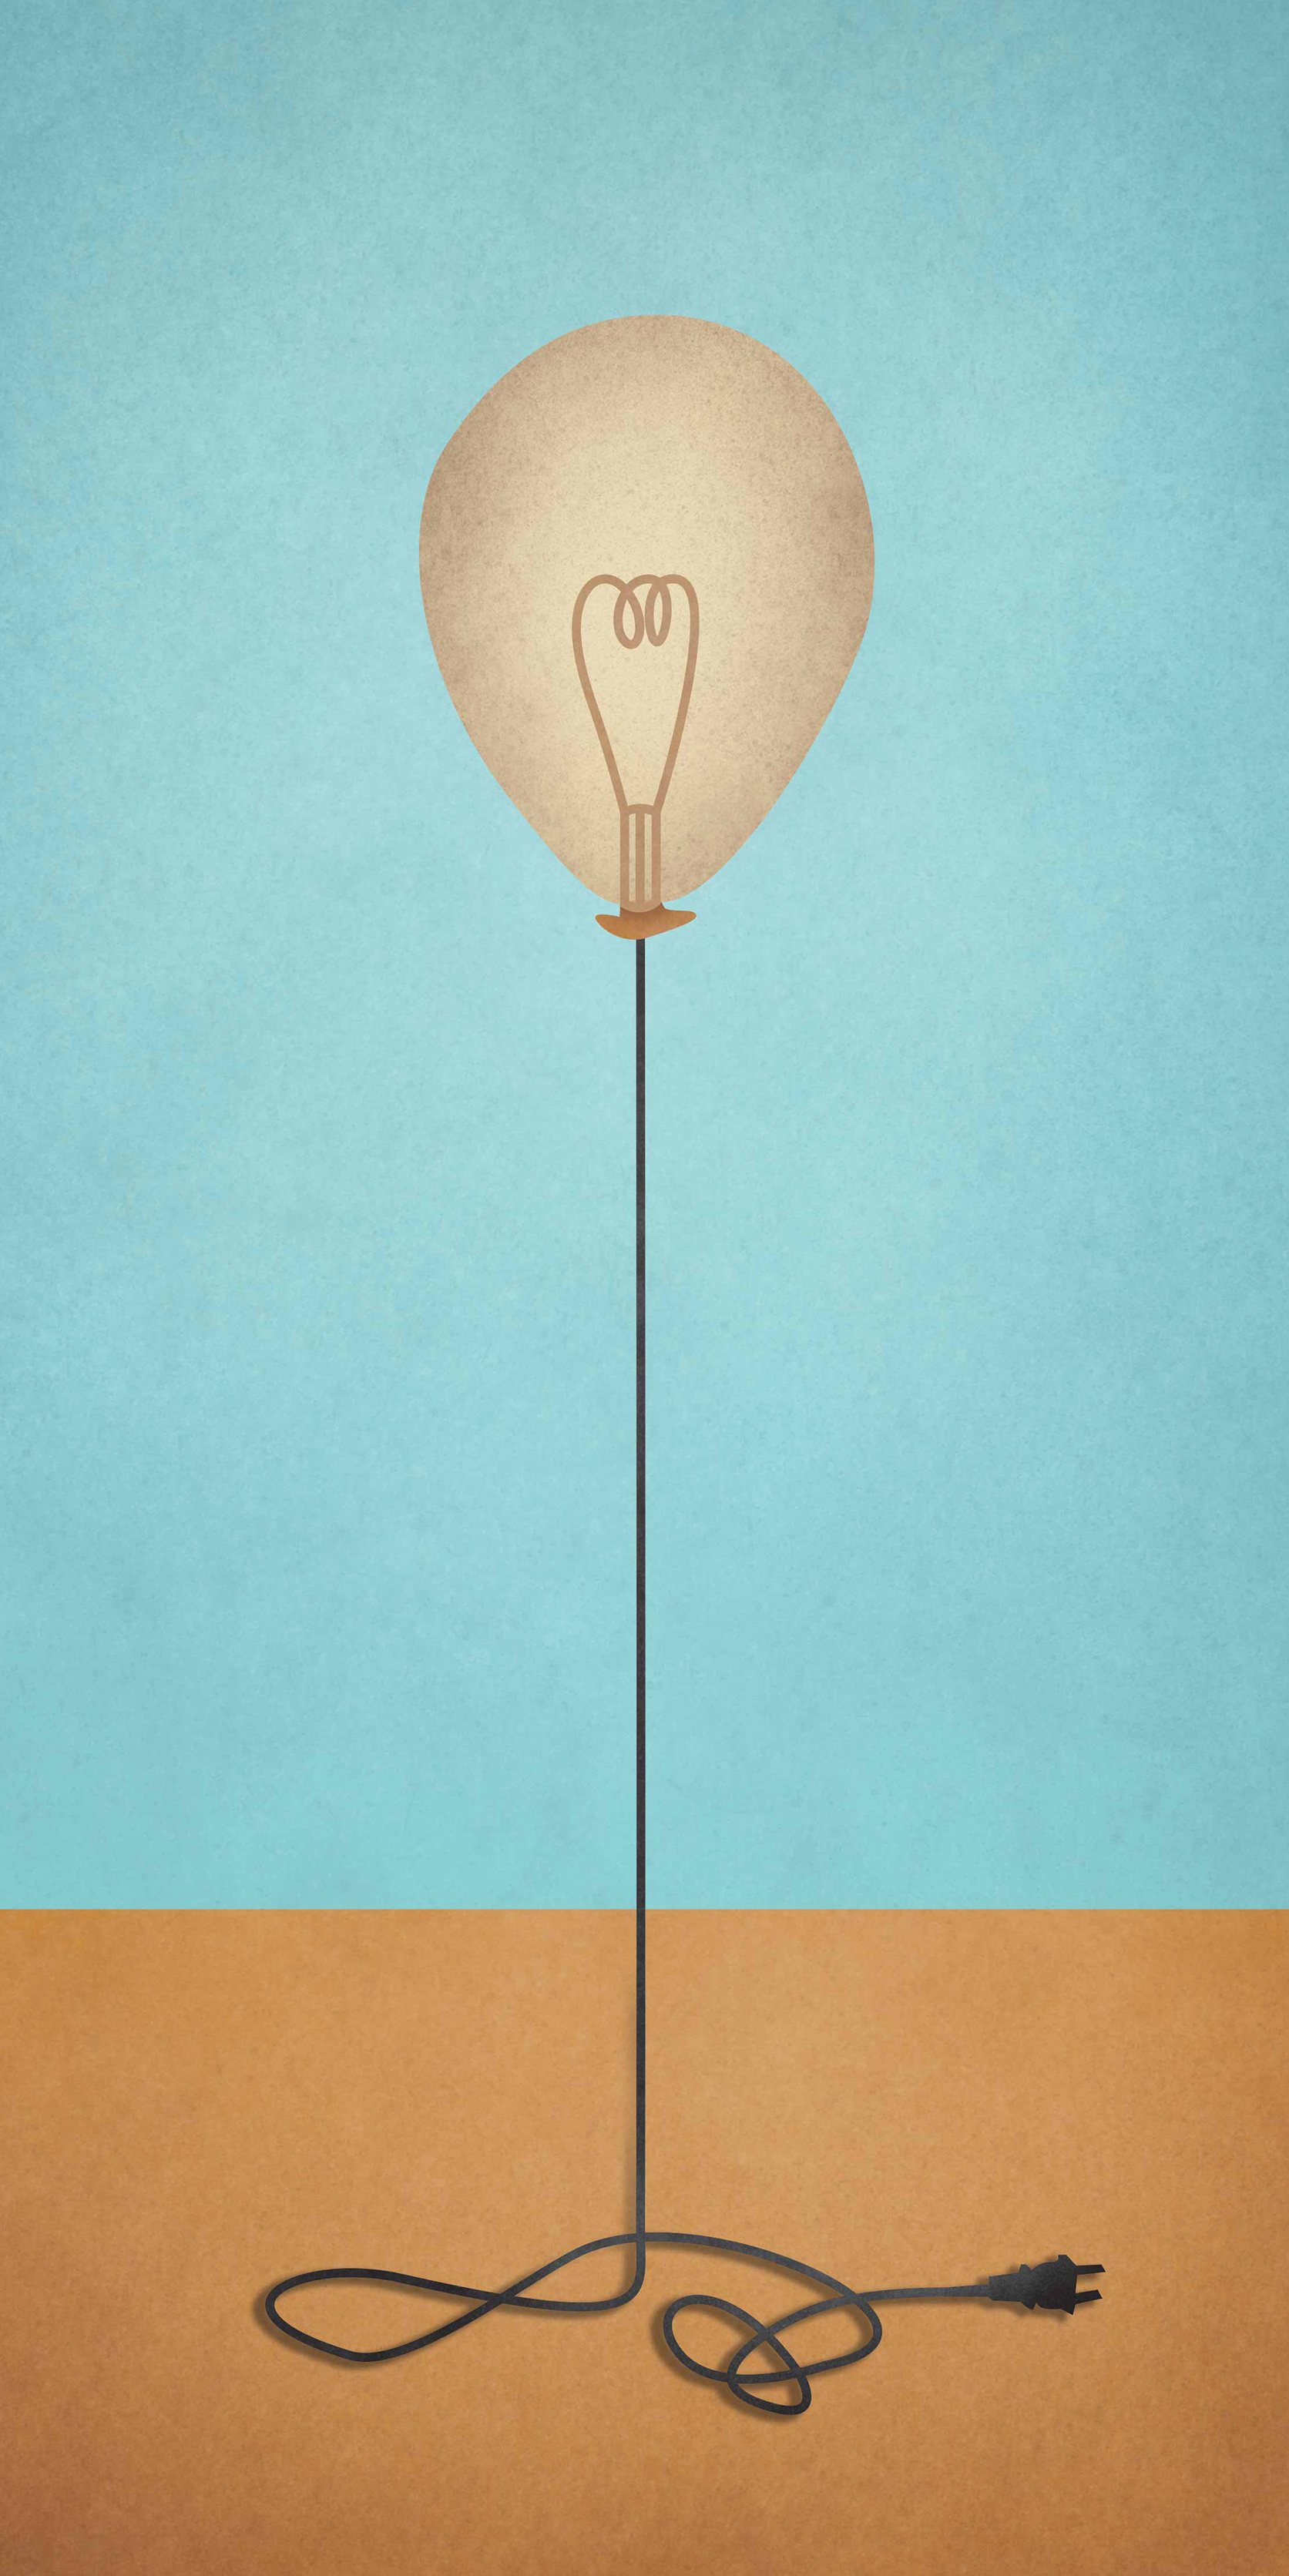 electrical_balloon_portfolio_16x8.jpg